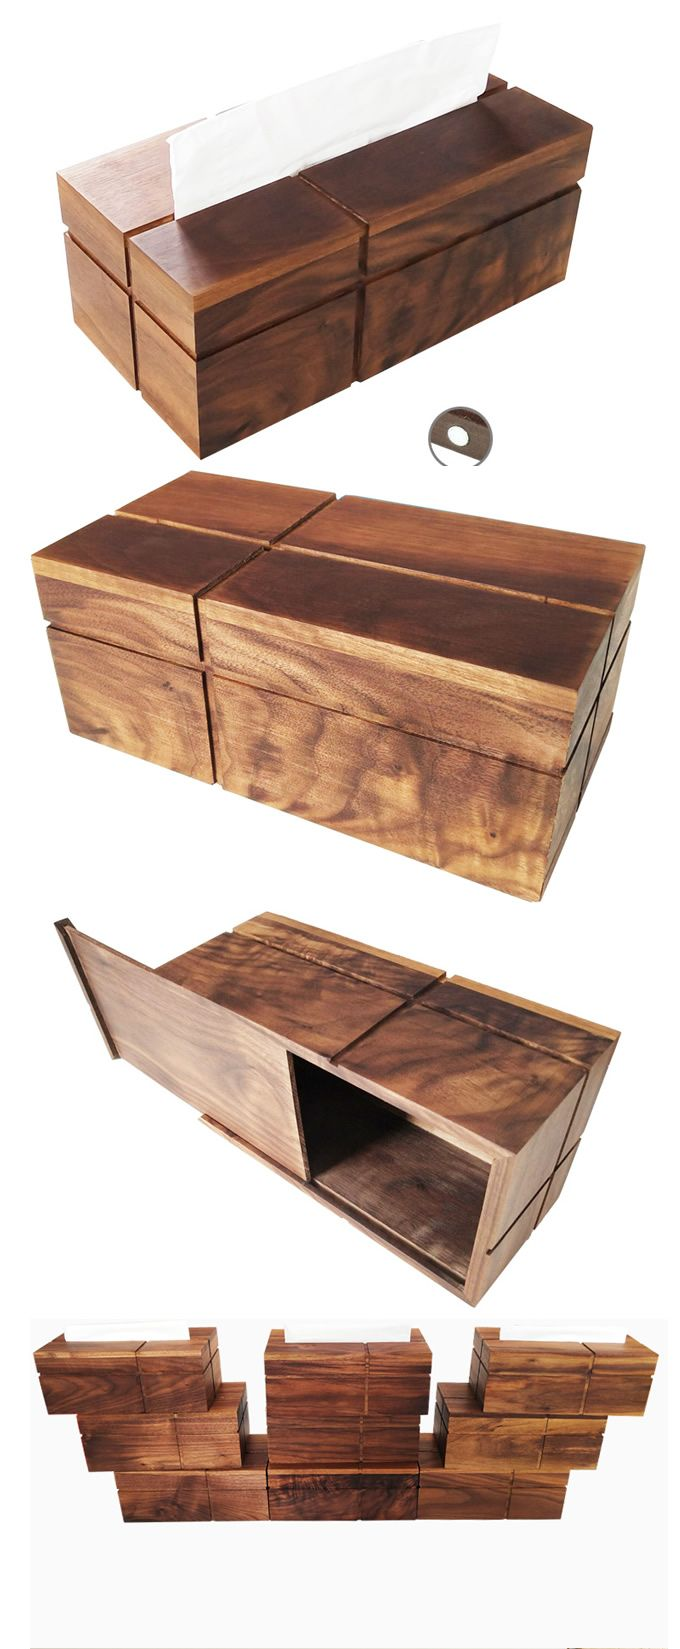 Black Walnut Bamboo Wooden Tissue Box Cover Holder Office Desk Organizer Storage To Your Supplies